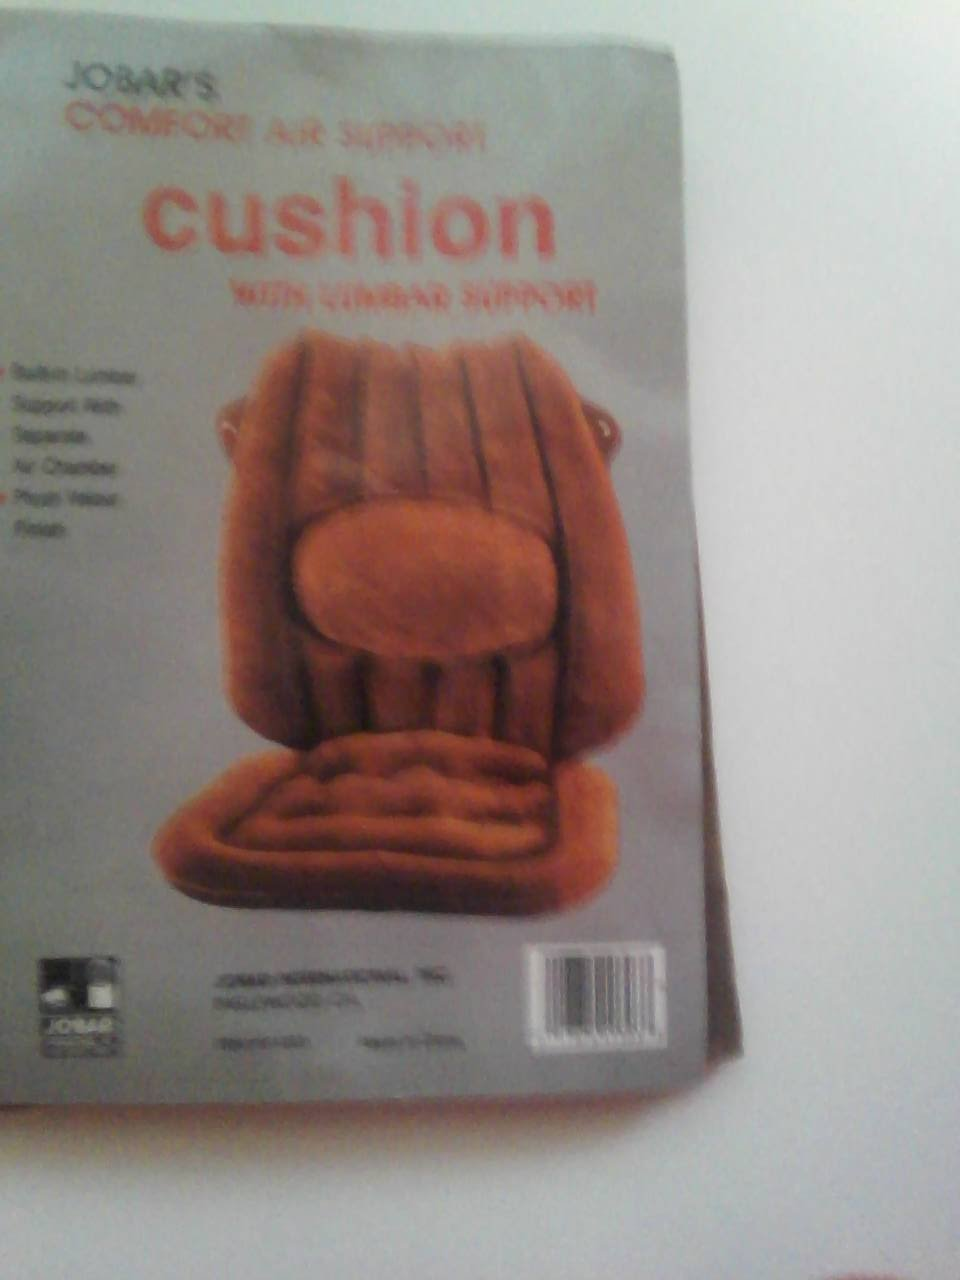 Comfort Air Support Cushion with Lumbar Support